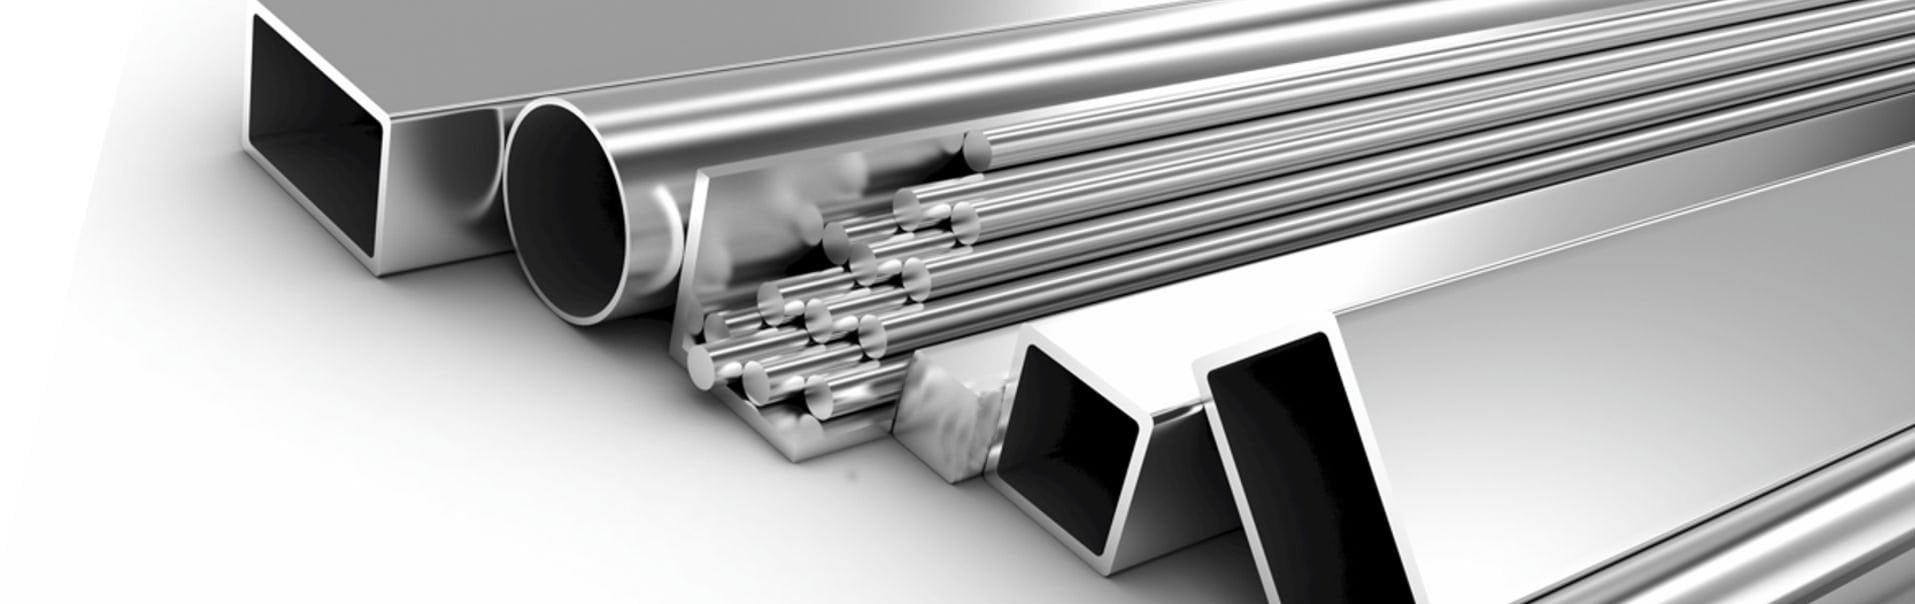 Reputed Stainless Steel and Aluminium Supplier